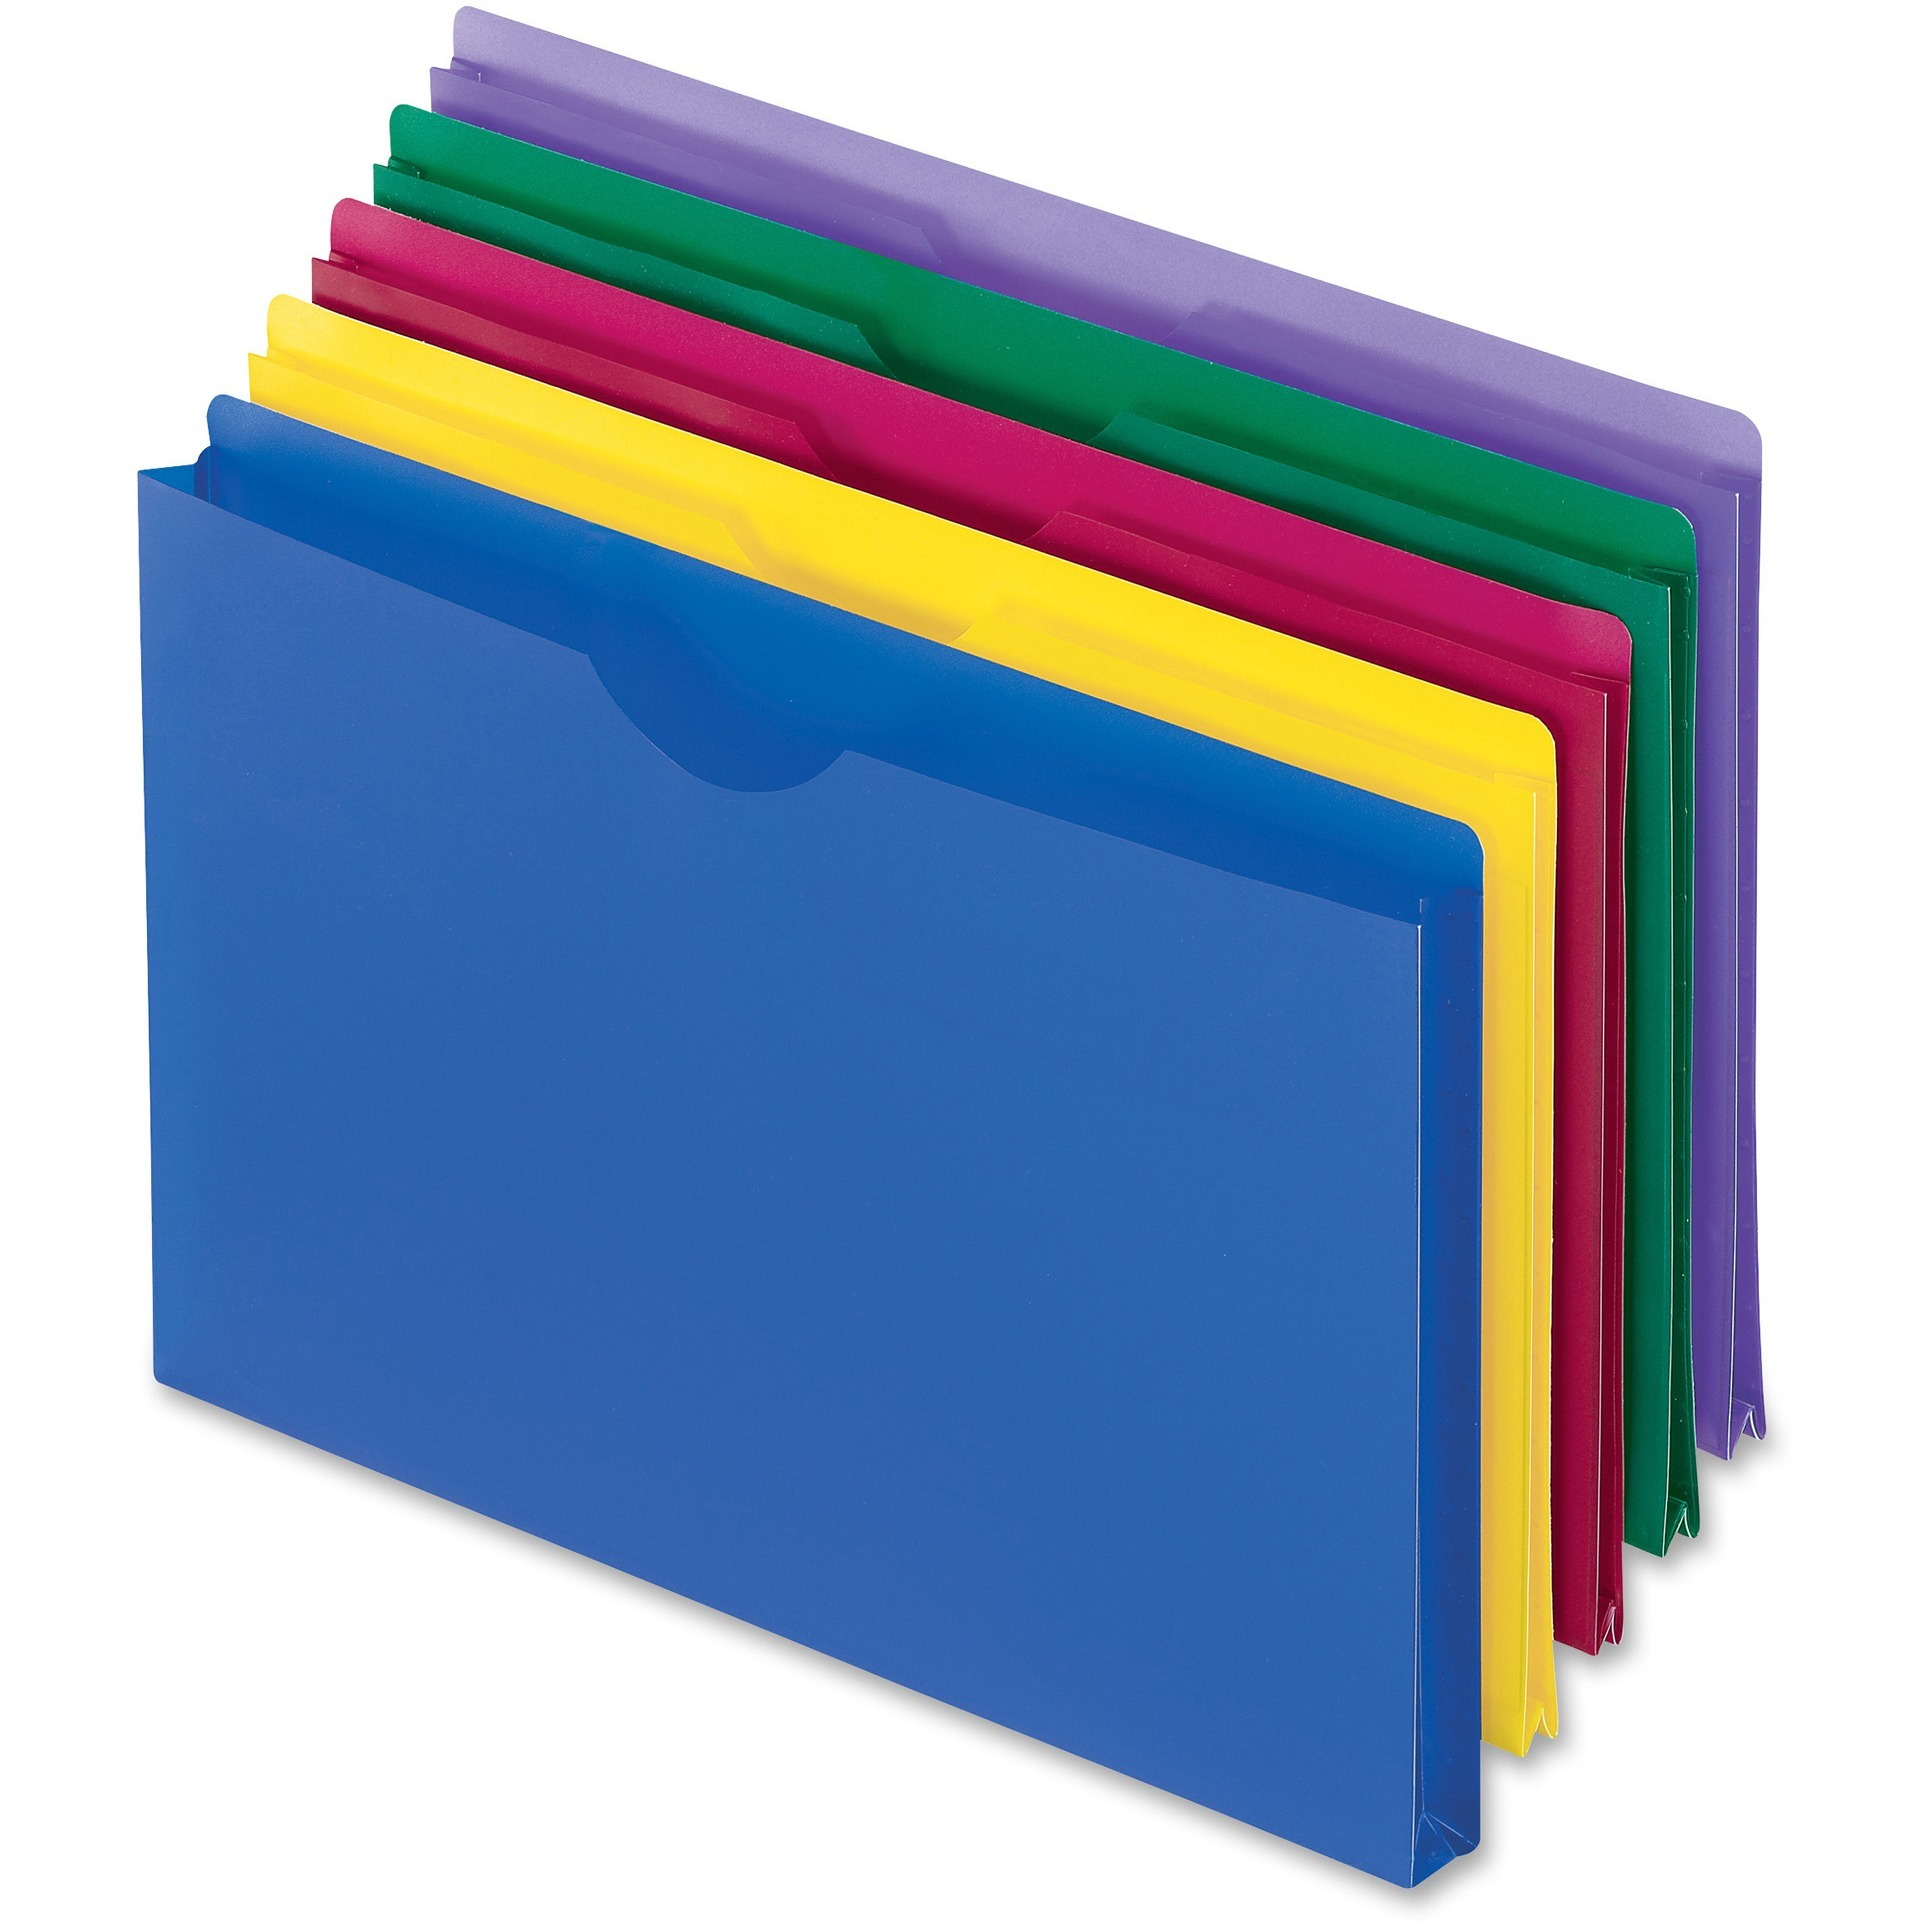 Pendaflex, PFX50993, Translucent Poly Legal-size File Jackets, 5 / Pack, Blue,Magenta,Yellow,Green,Purple